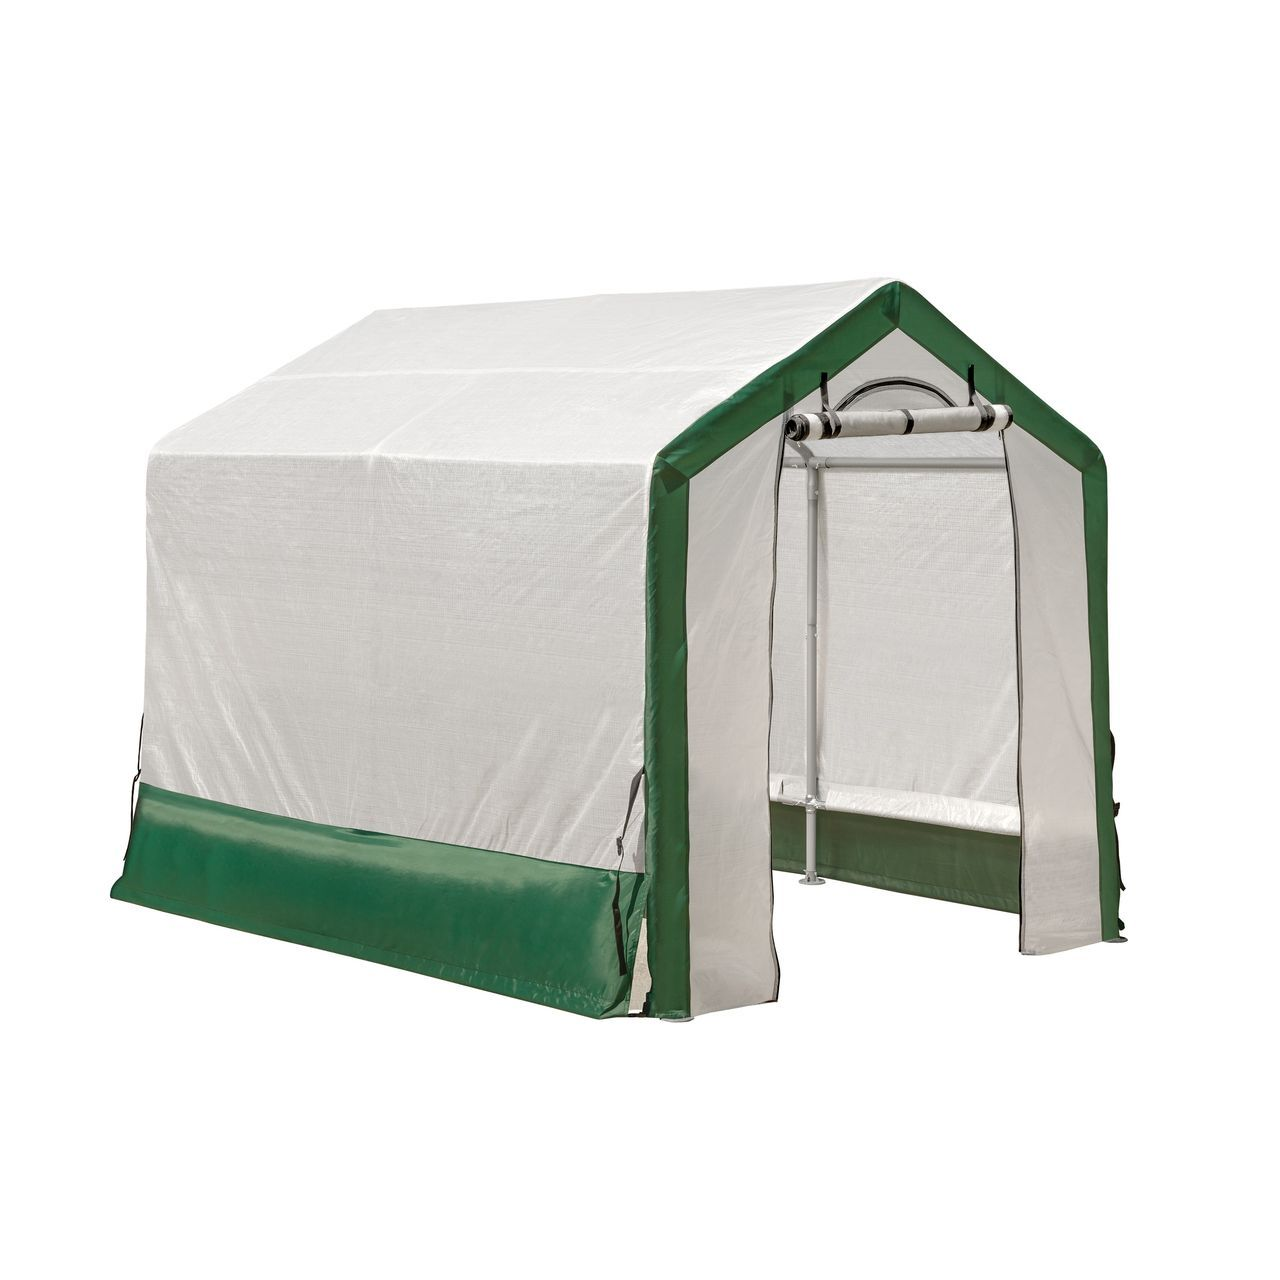 ShelterLogic Organic Growers Greenhouse - 6x8x6.5 ft